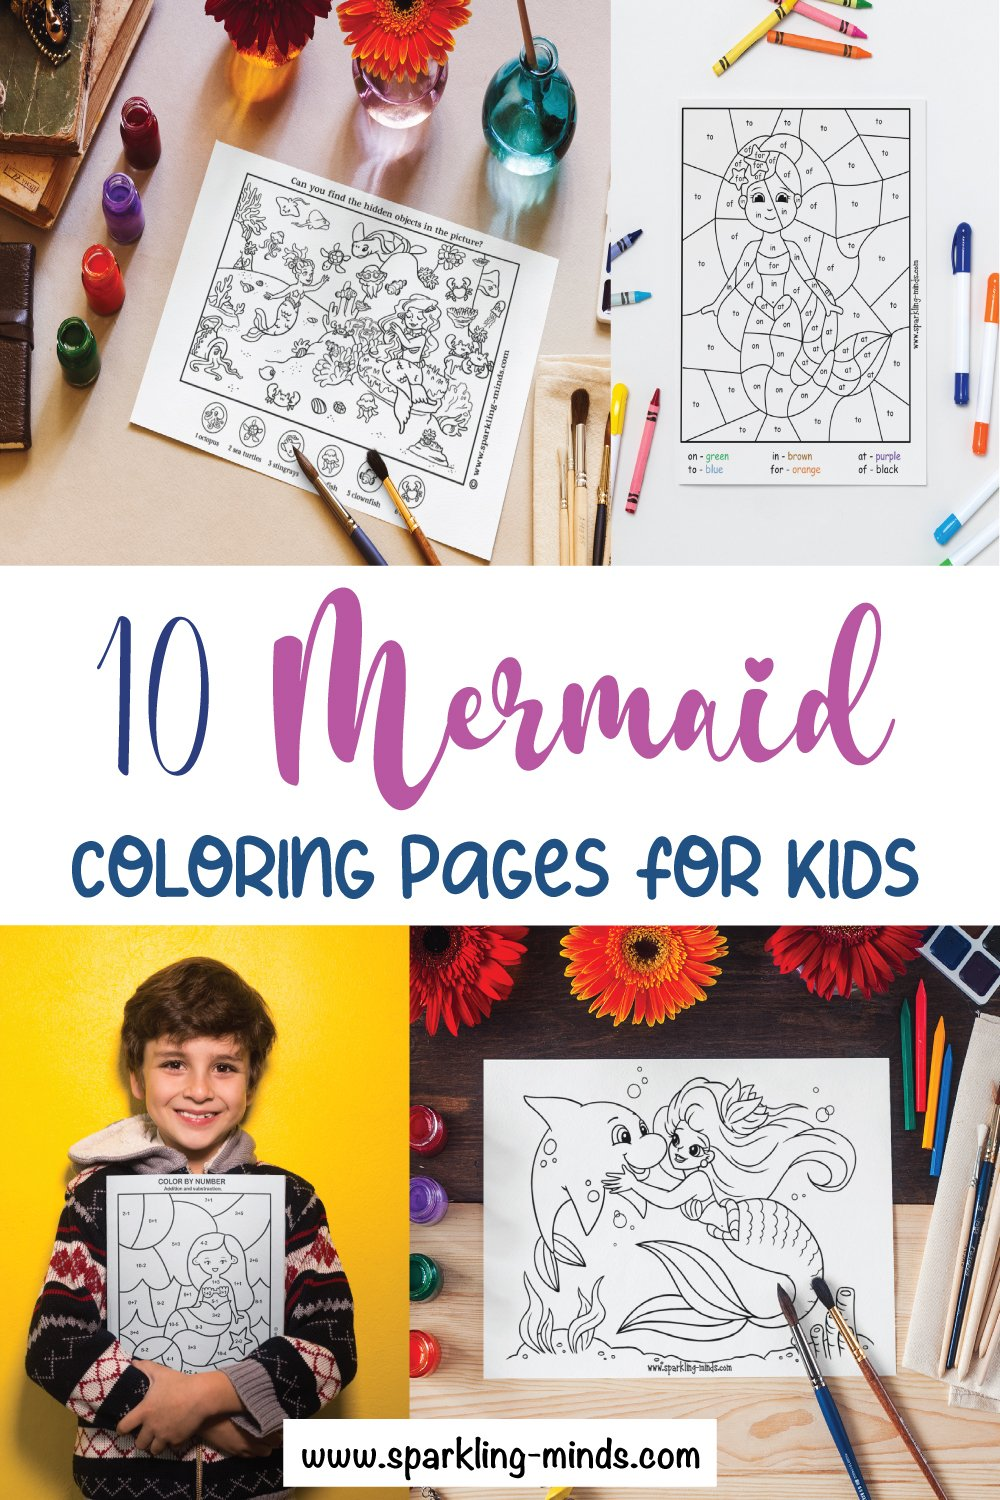 mermaid coloring pages for kids pin image for pinterest